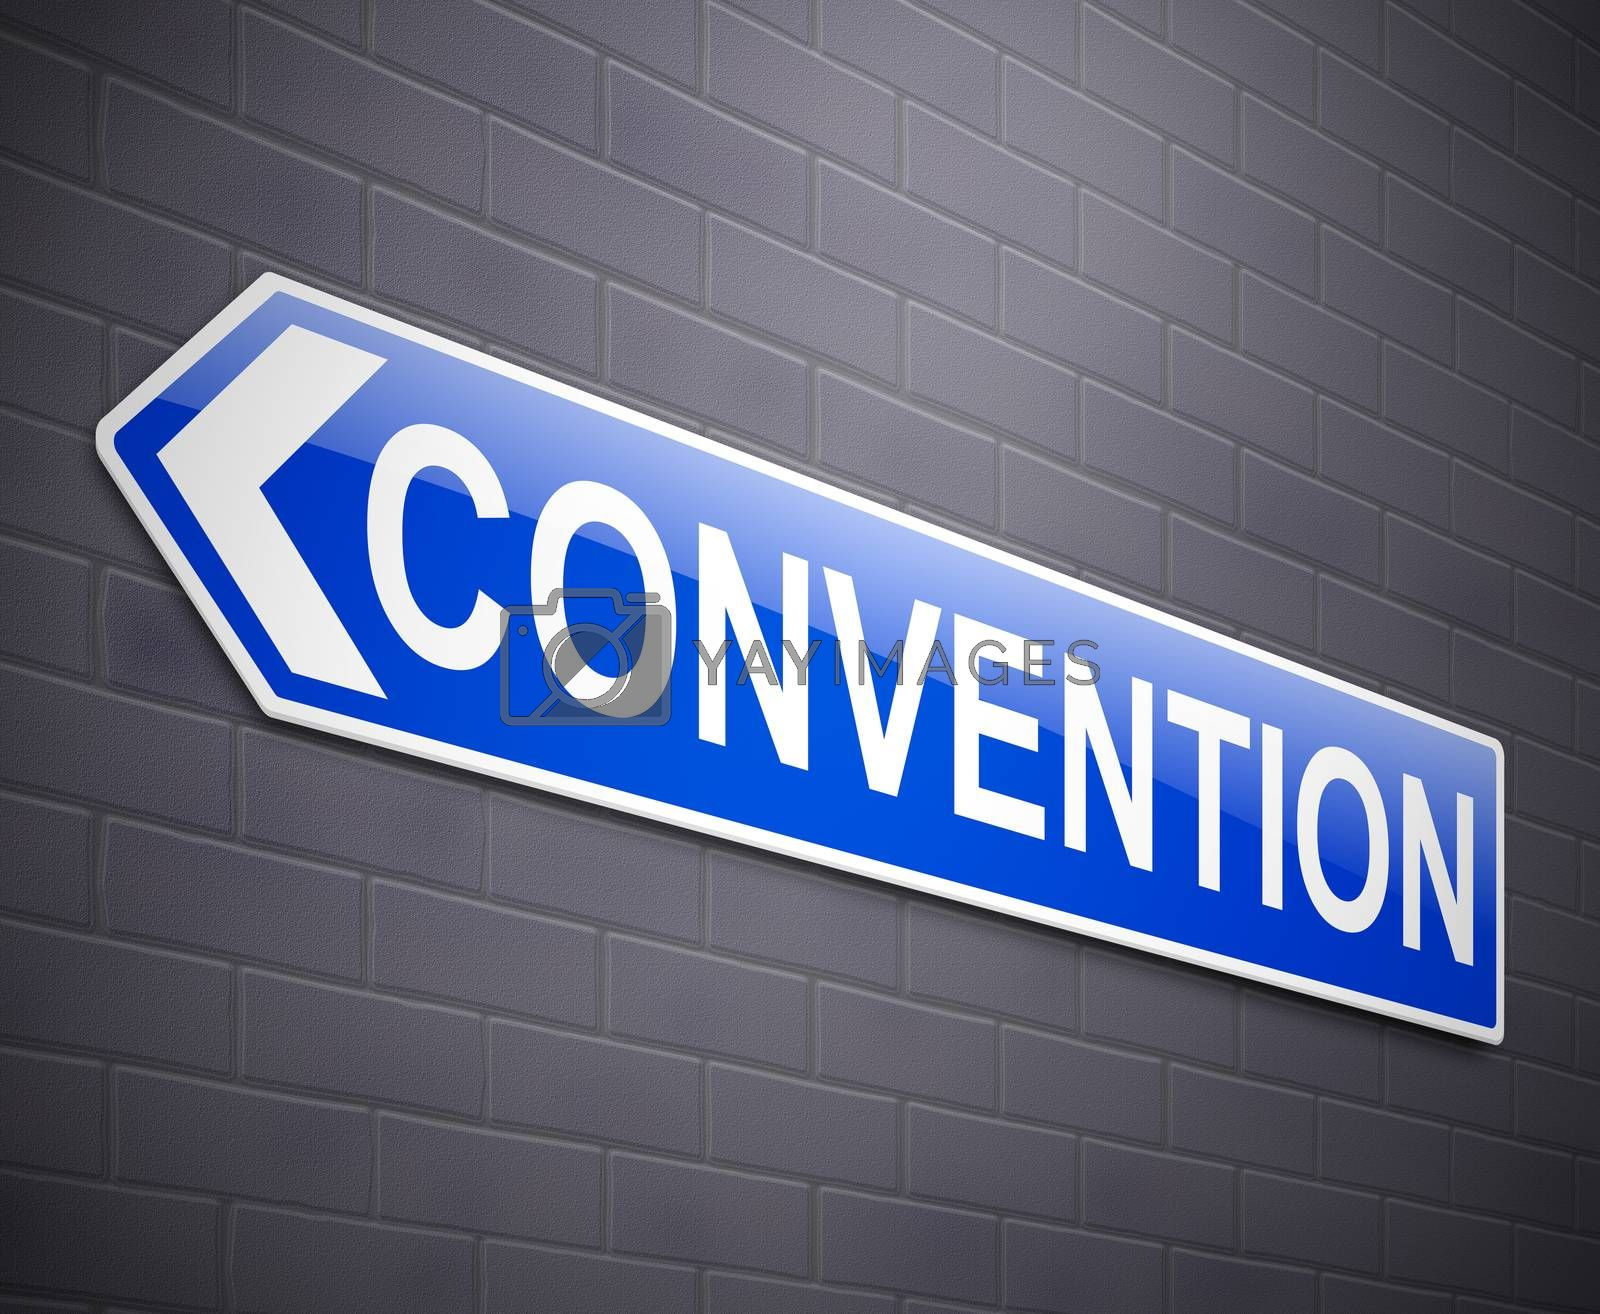 Illustration depicting a wall mounted sign with a convention concept.